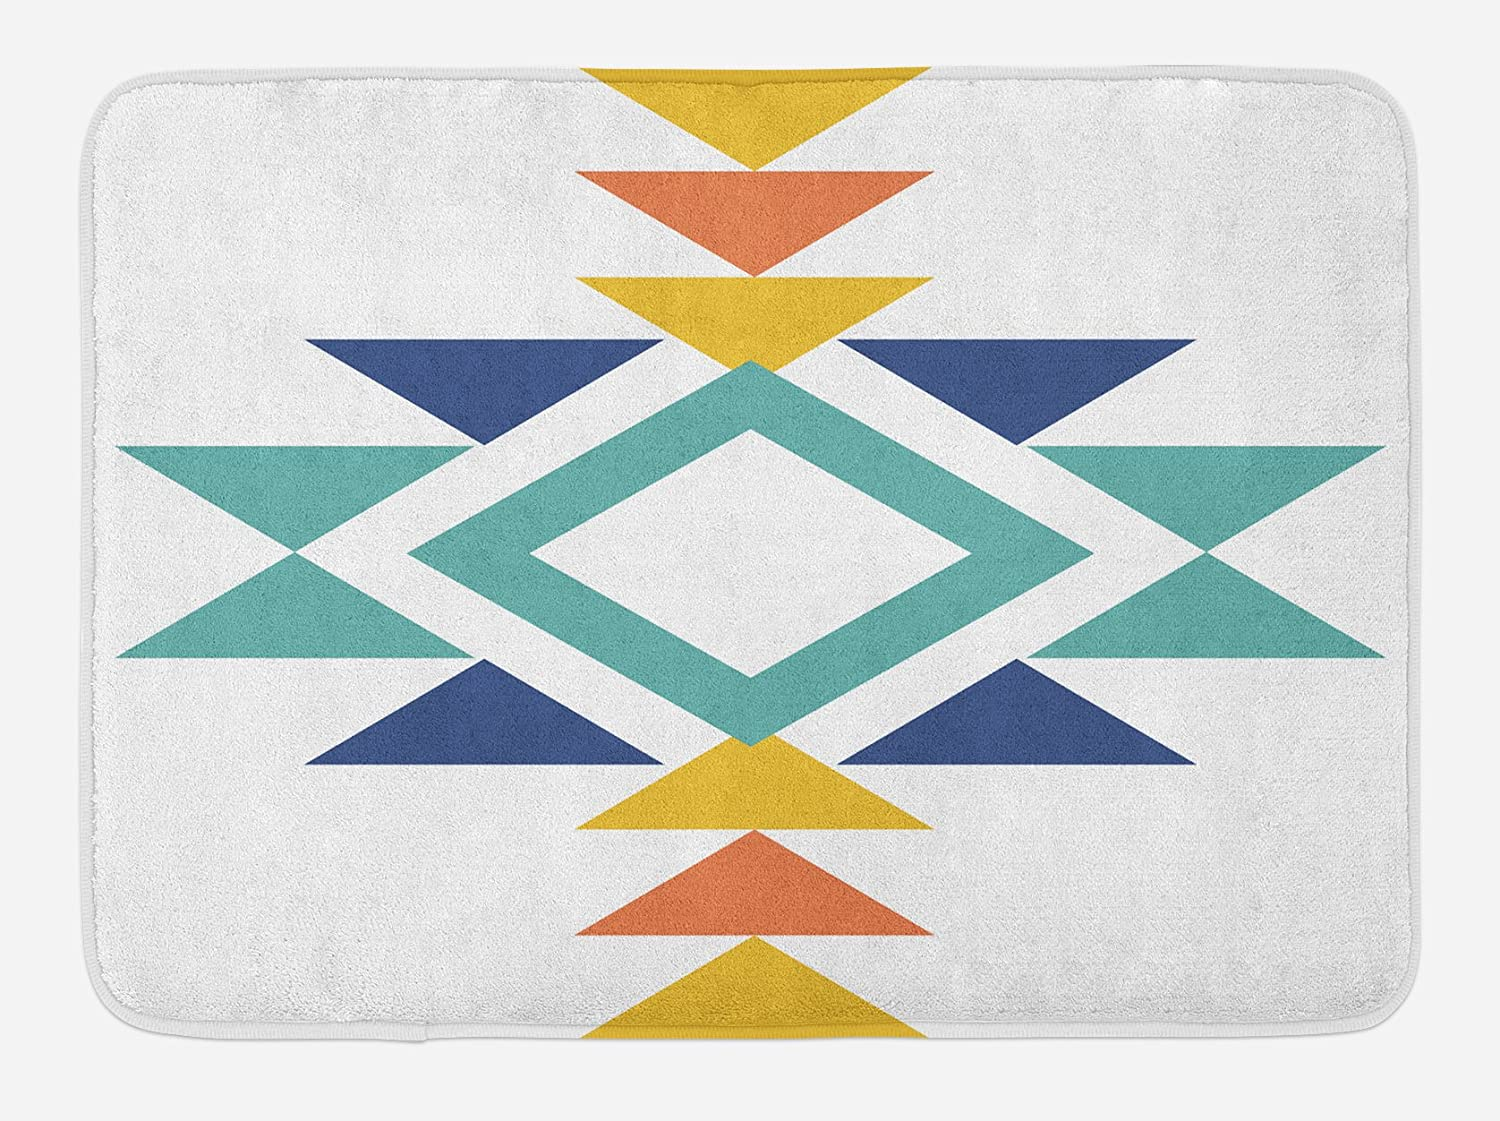 Lunarable Aztec Bath Mat, Abstract Aztec Pattern with Colorful Design Indigenous Culture Print, Plush Bathroom Decor Mat with Non Slip Backing, 29.5 X 17.5, Mustard Turquoise Dark Blue